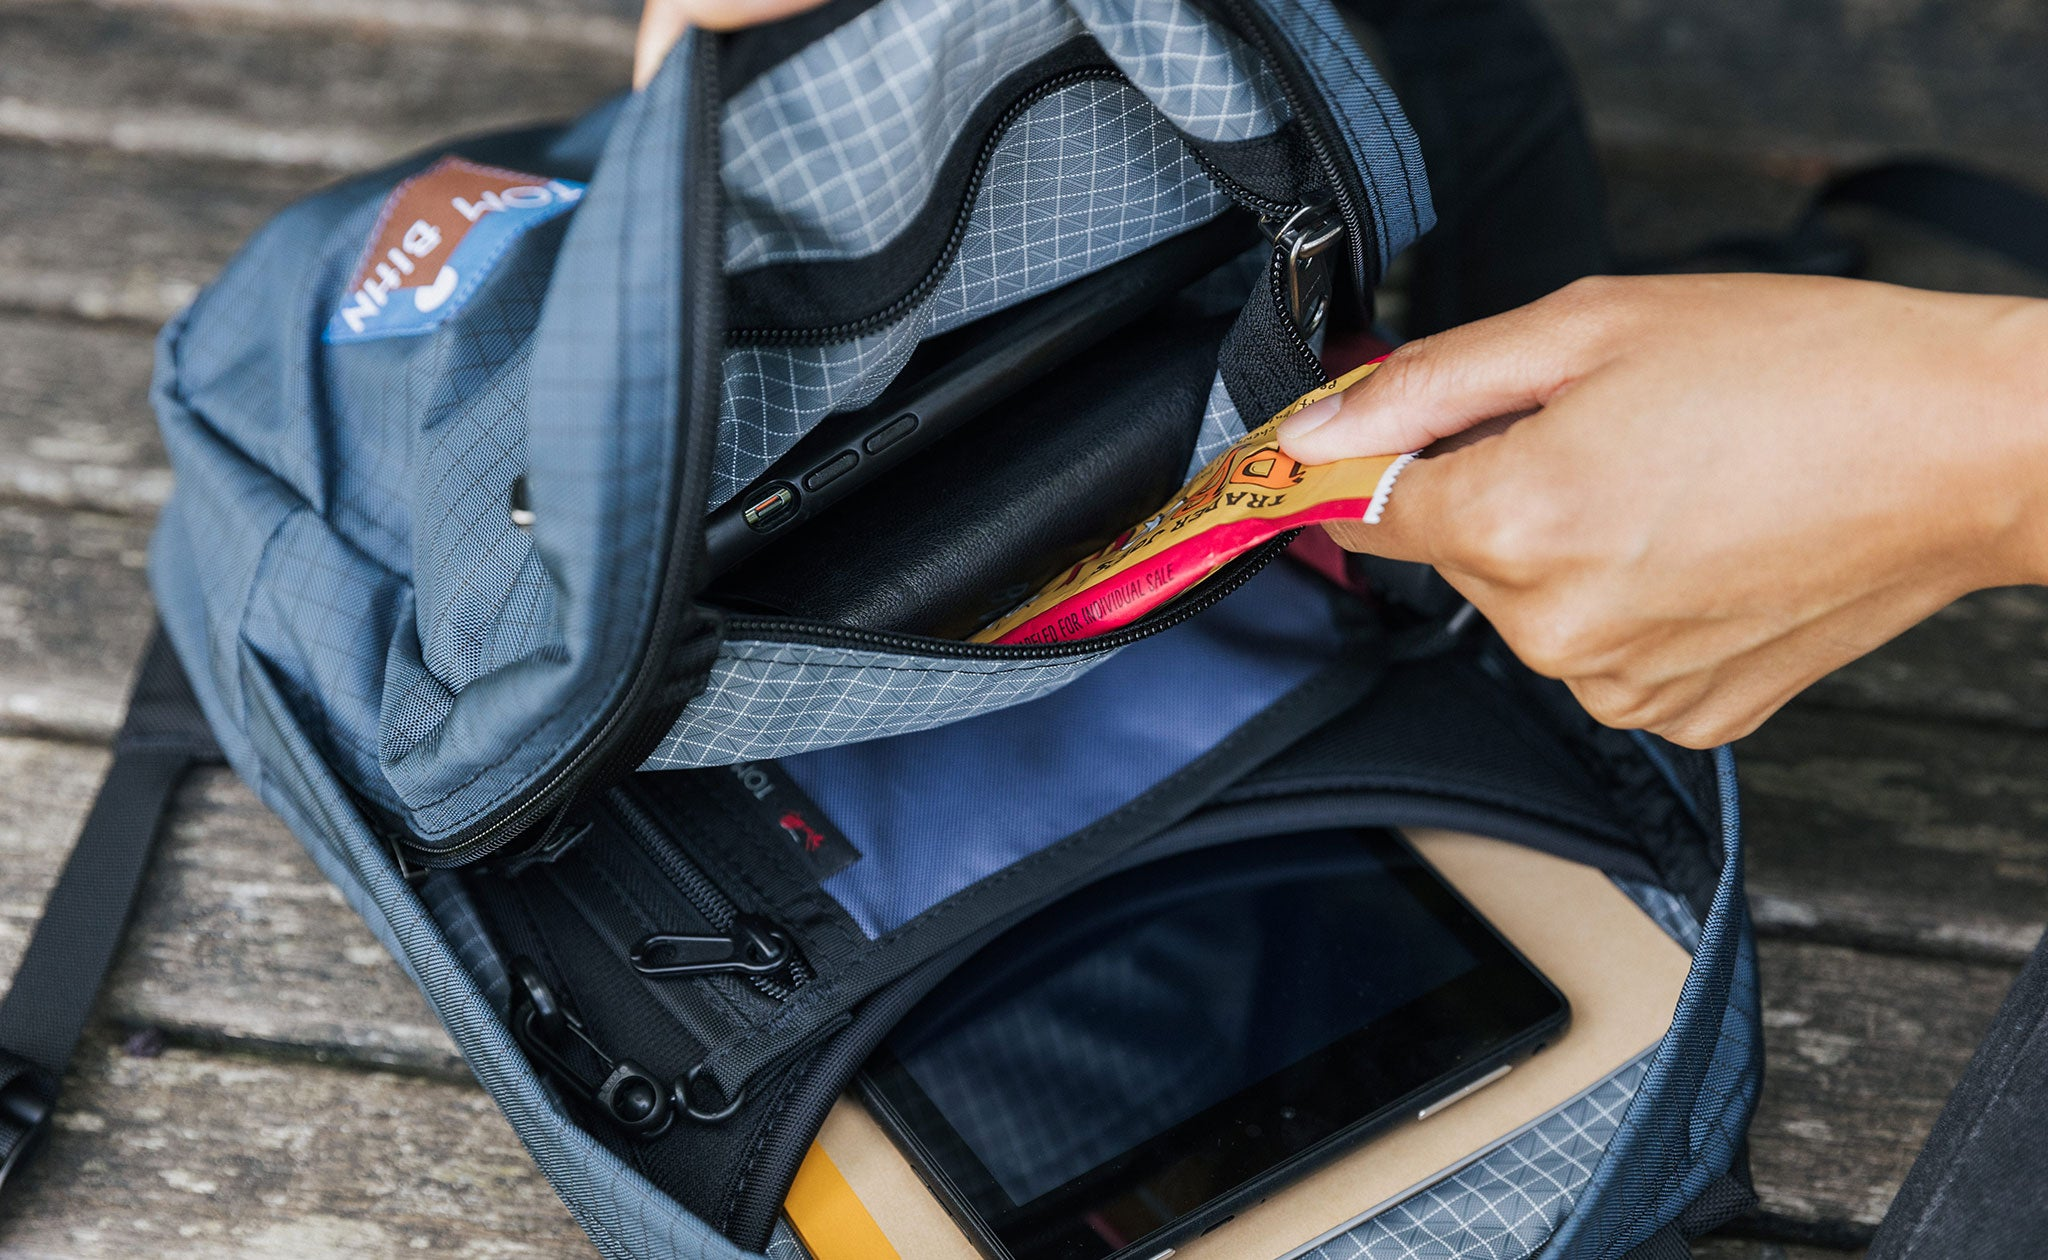 A person removing a protein bar from the interior pocket of the Zeitgeist (also filled with a wallet and cellphone)